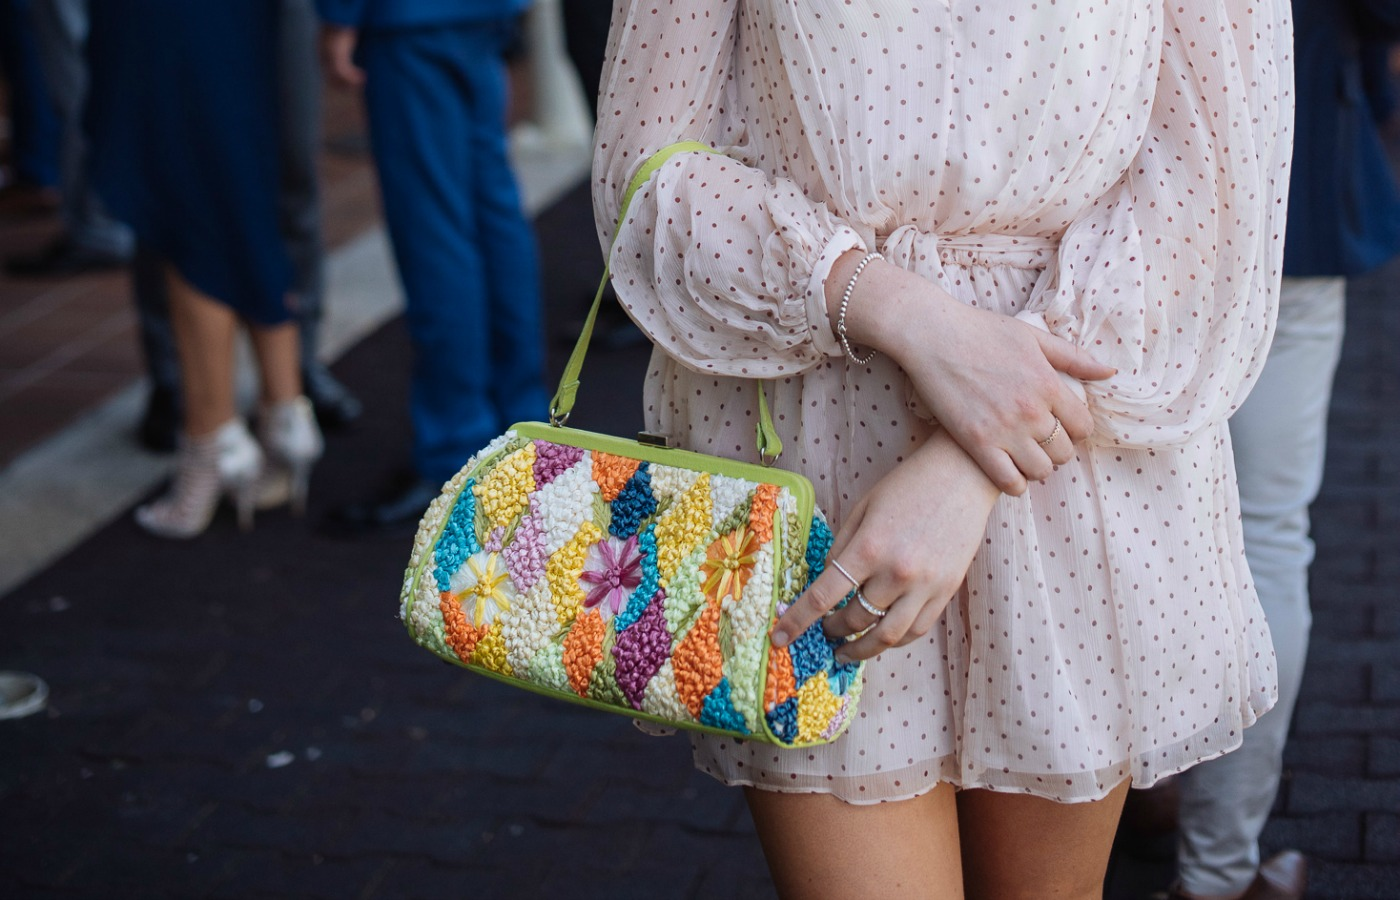 Colourful clutch bag street style fashion at Royal Randwick racecourse.